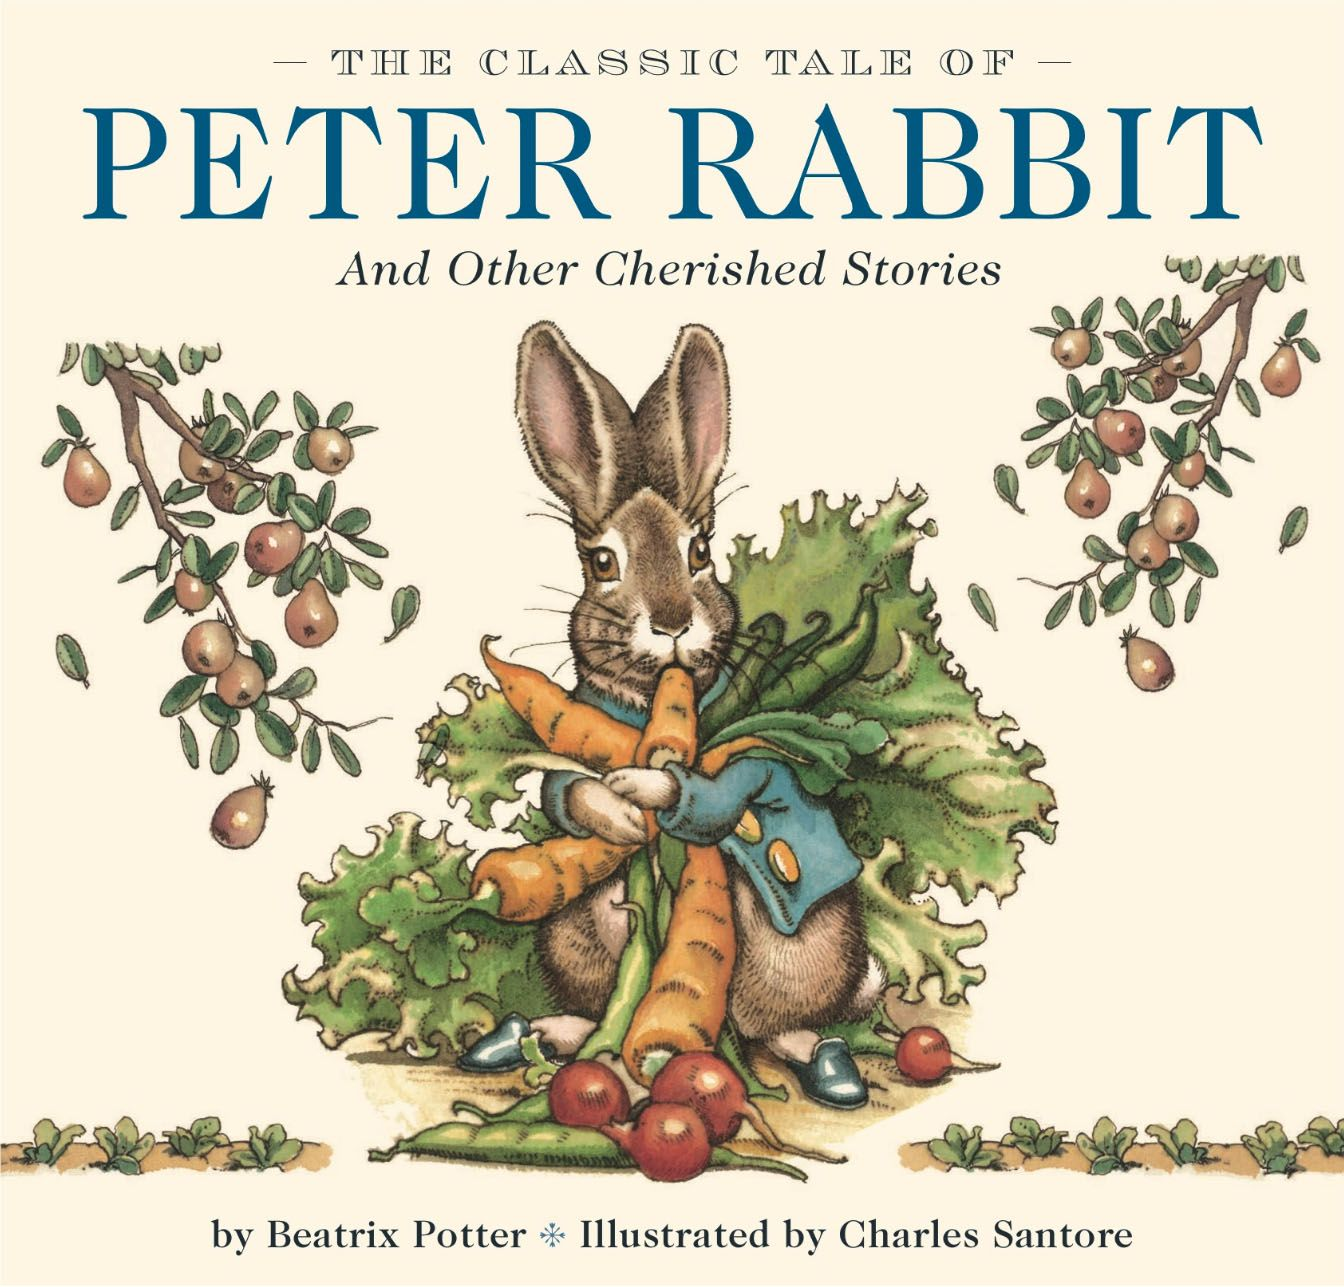 Coming this fall The Classic Tale of Peter Rabbit and